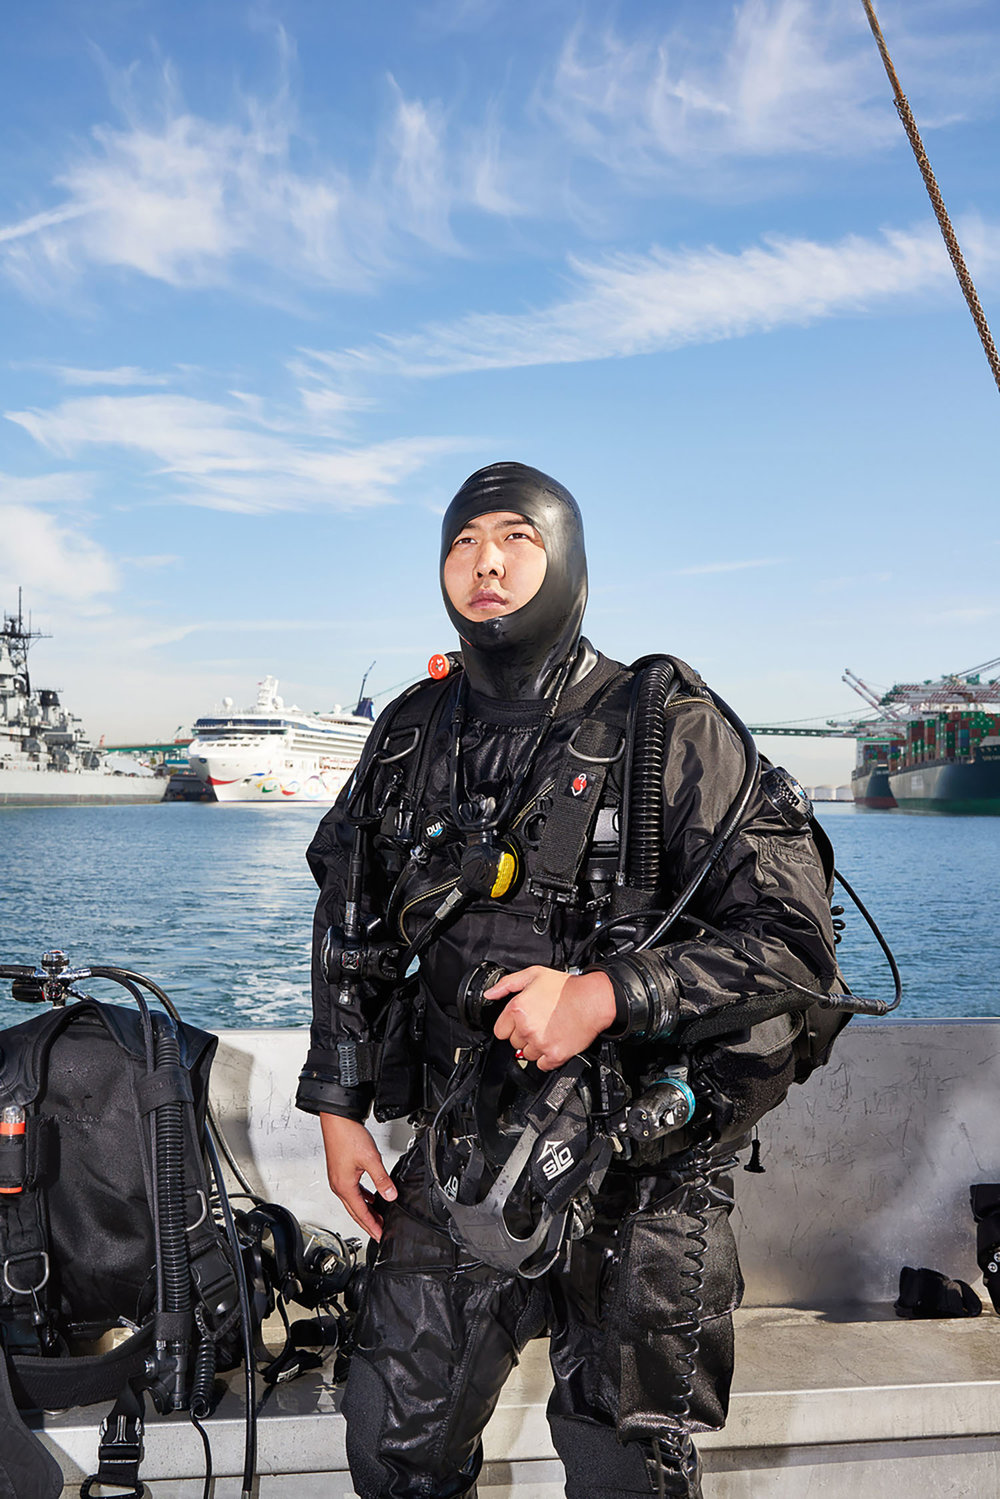 Frank Huan, Member of the Los Angeles Port Police Dive Team